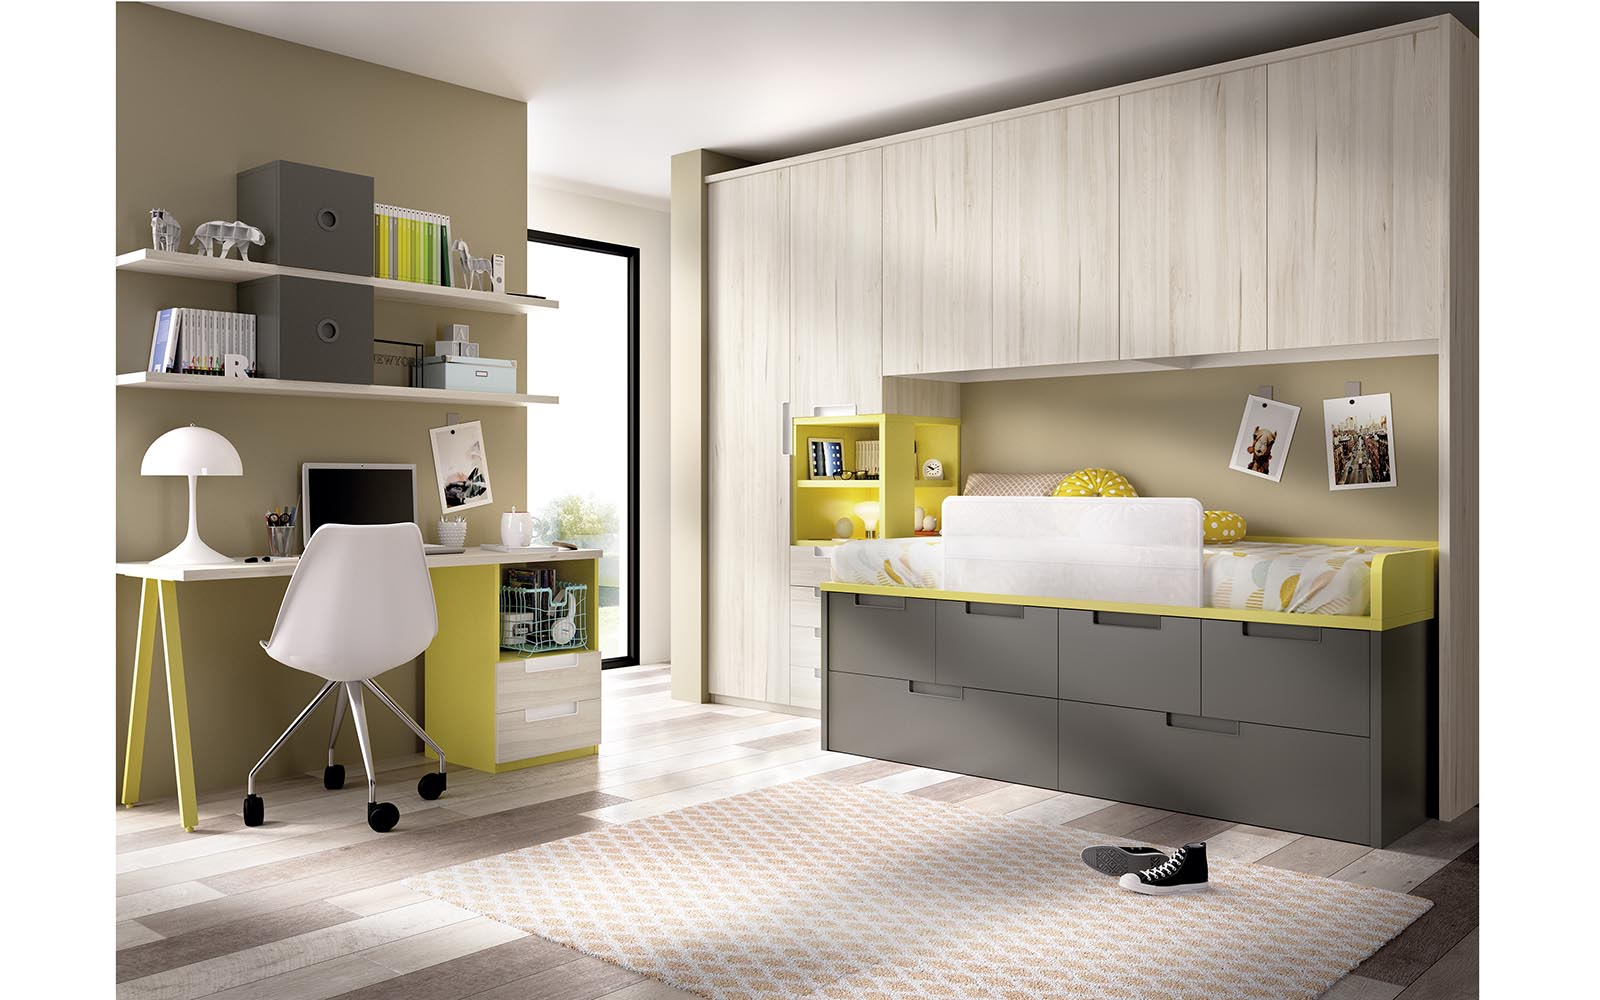 grey wooden high bedroom for kids, adjustable kids bed for your bedroom choices, yellow and grey wooden kids bedroom, paidiko krevati gkrizo xilino me ermarakia apo kato kai kitrines leptomeries,